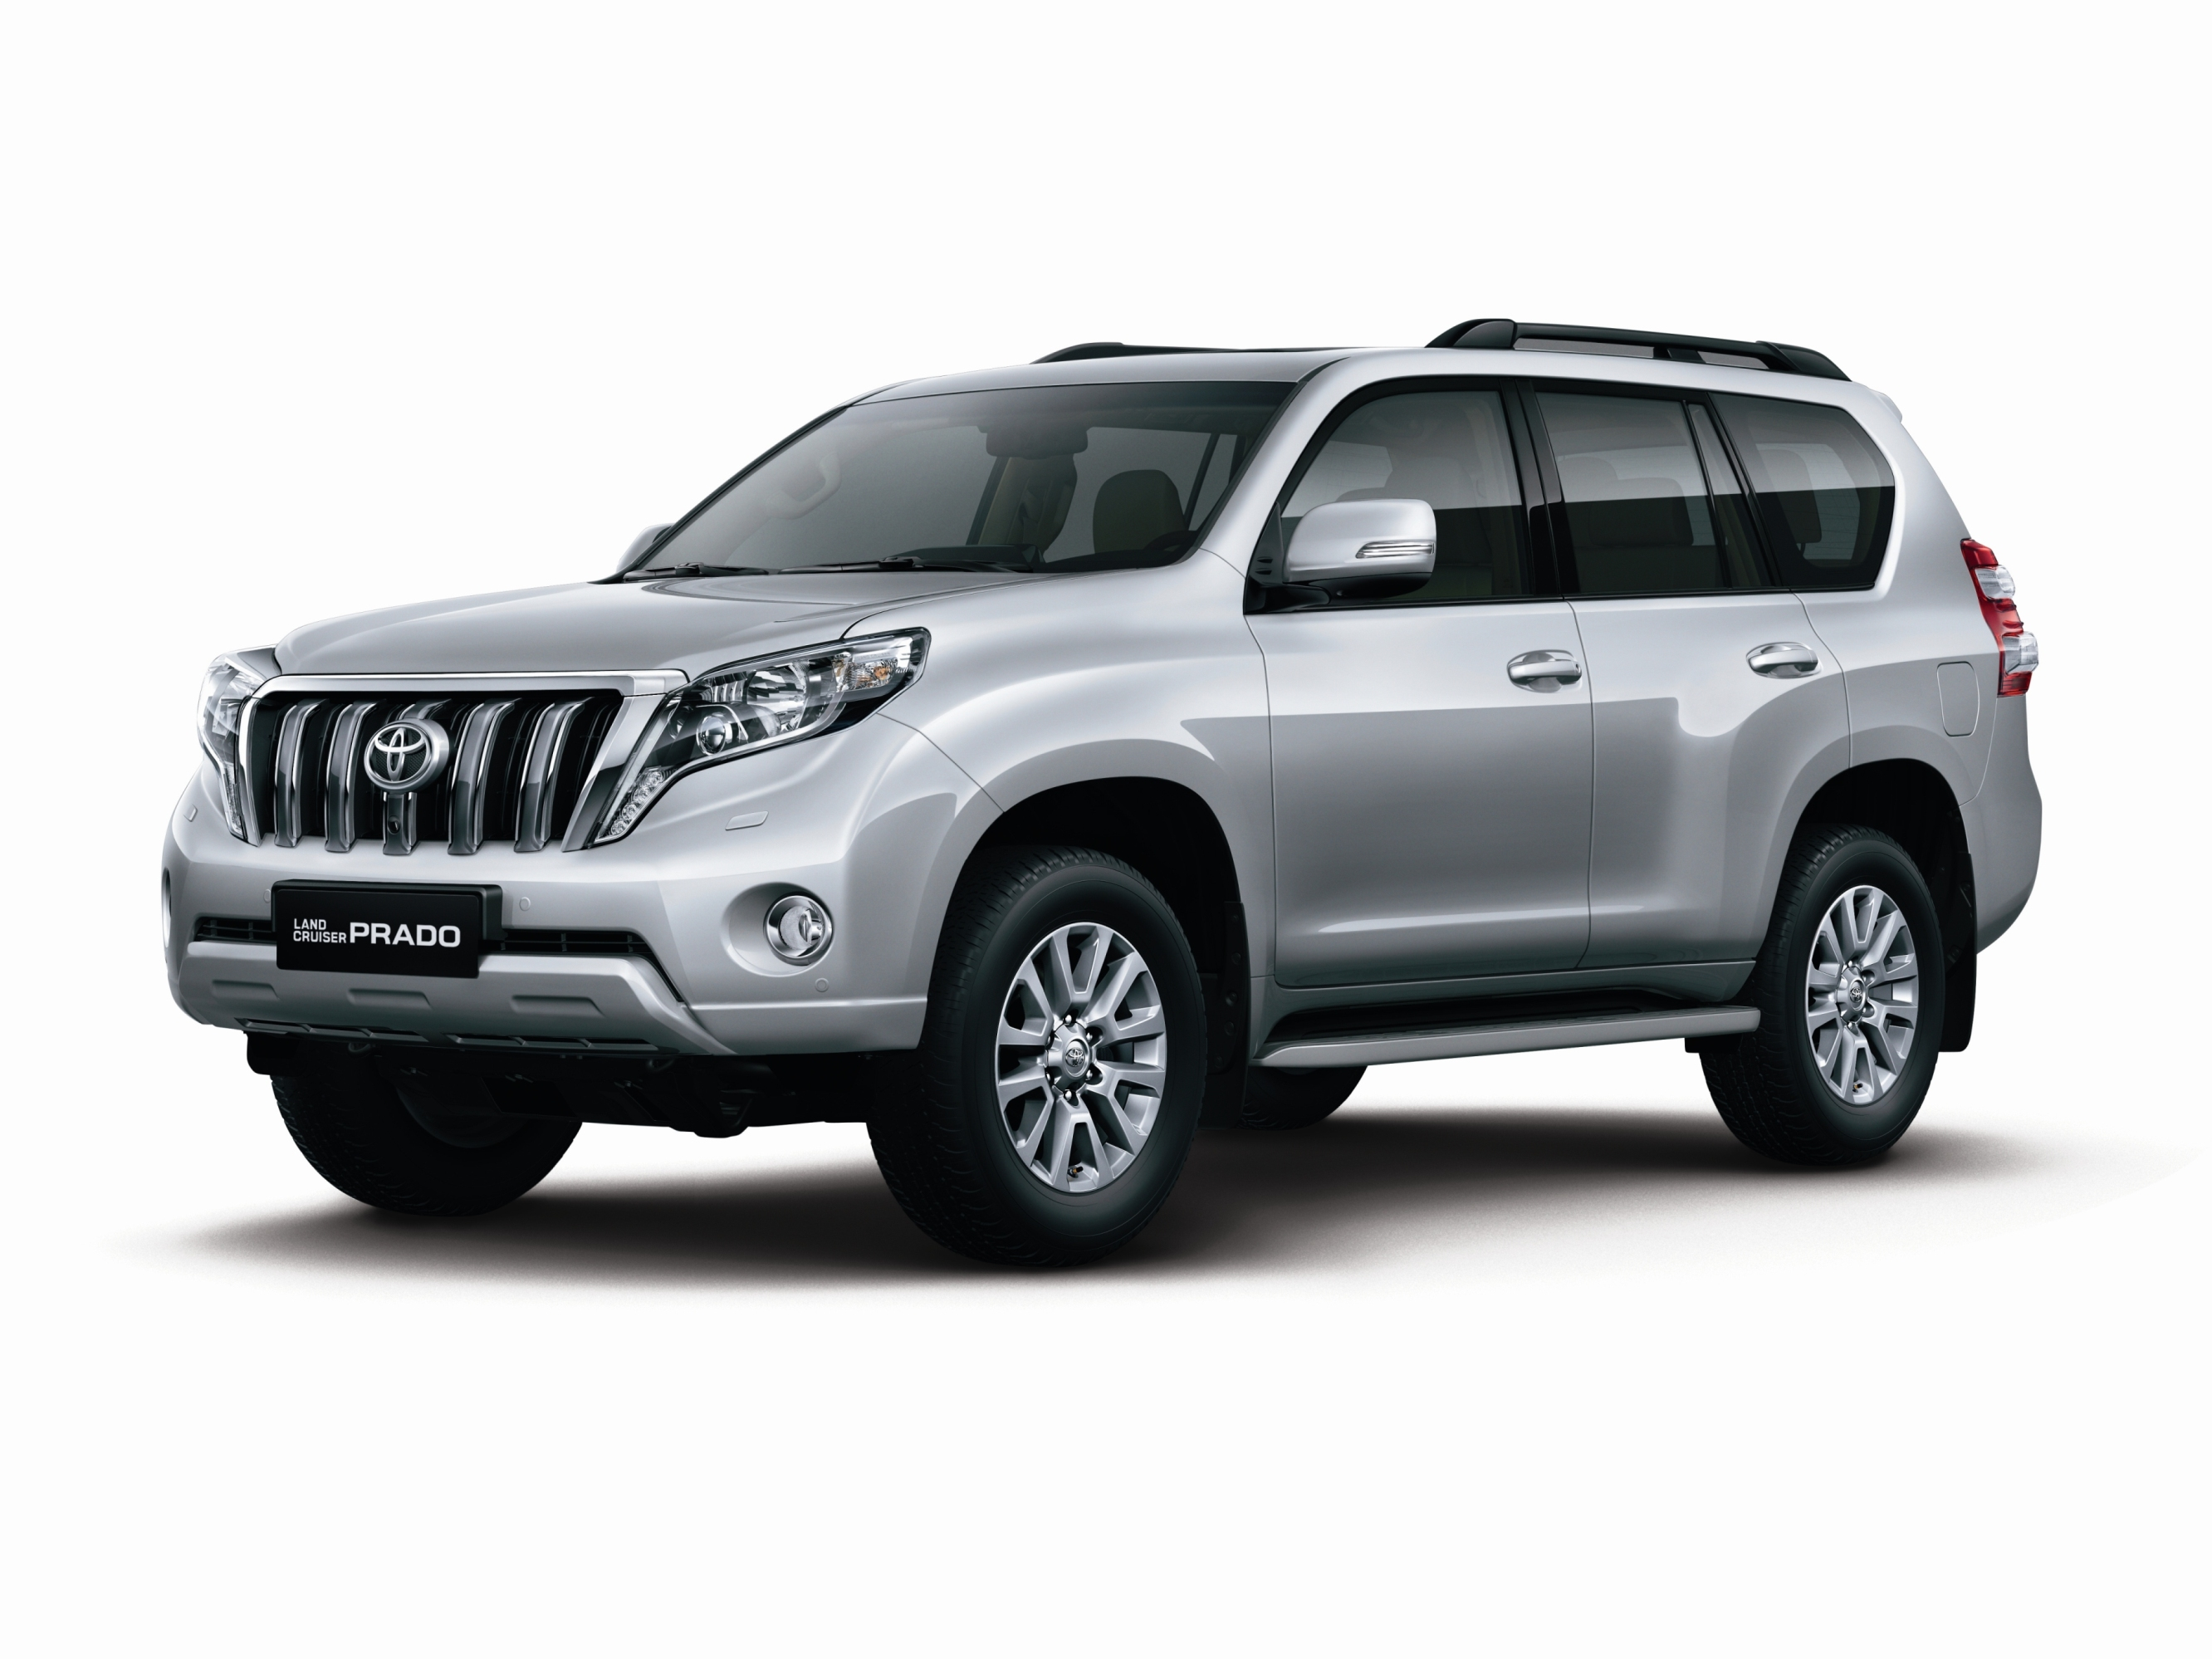 New Toyota Land Cruiser Prado launched at Rs 84.87 lakh ...